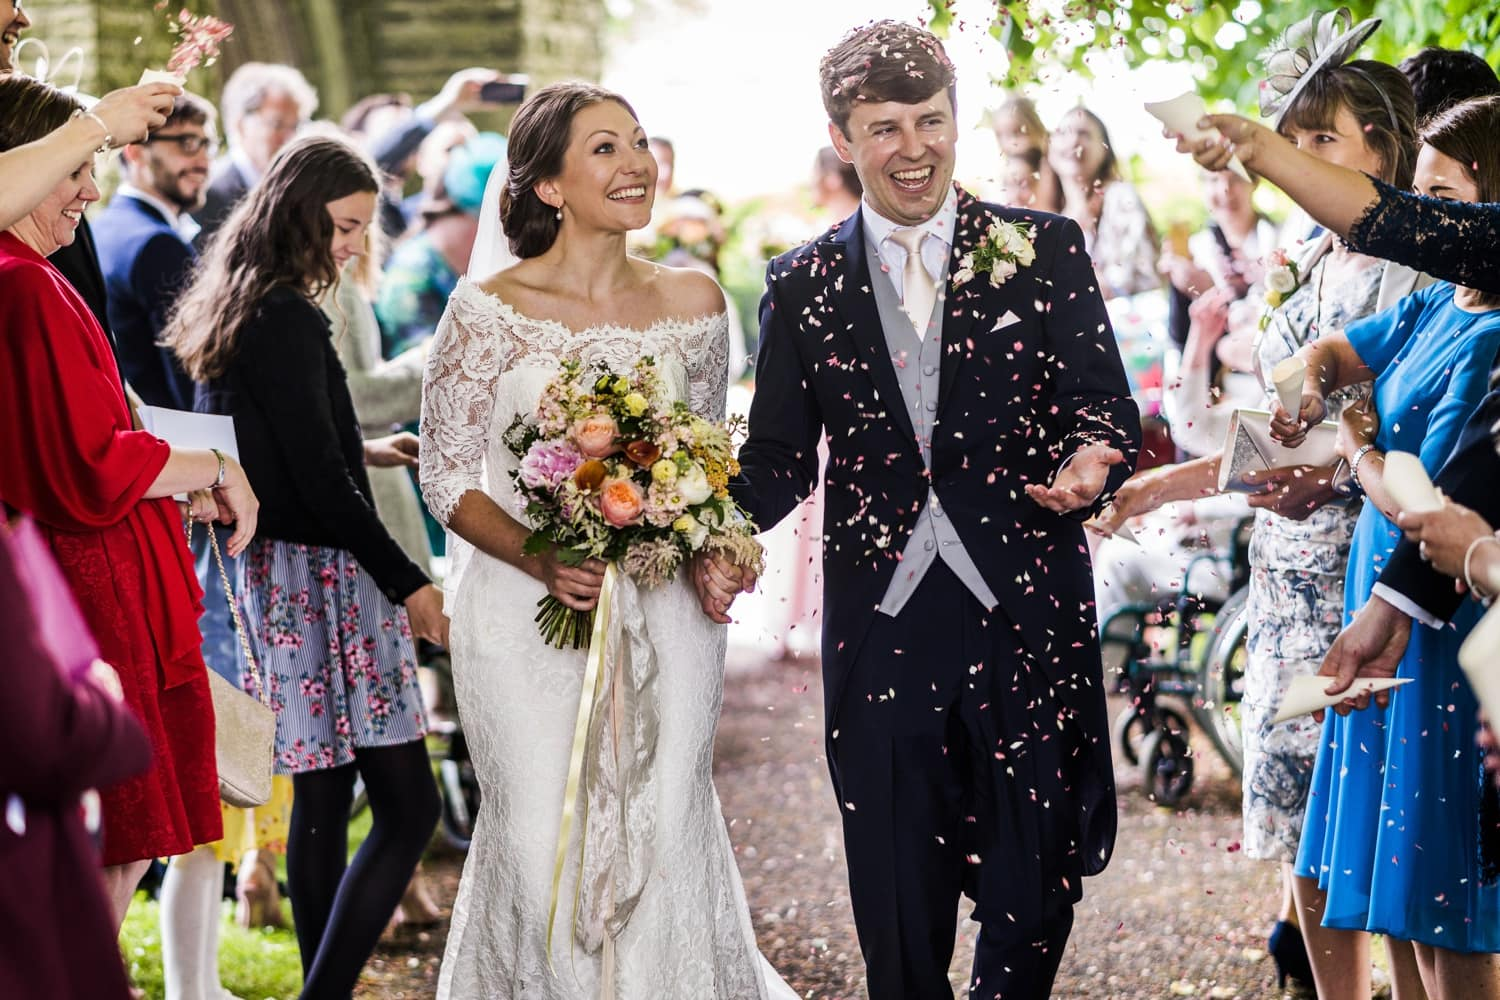 guests throw confetti at newly married couple at Miskin in South Wales